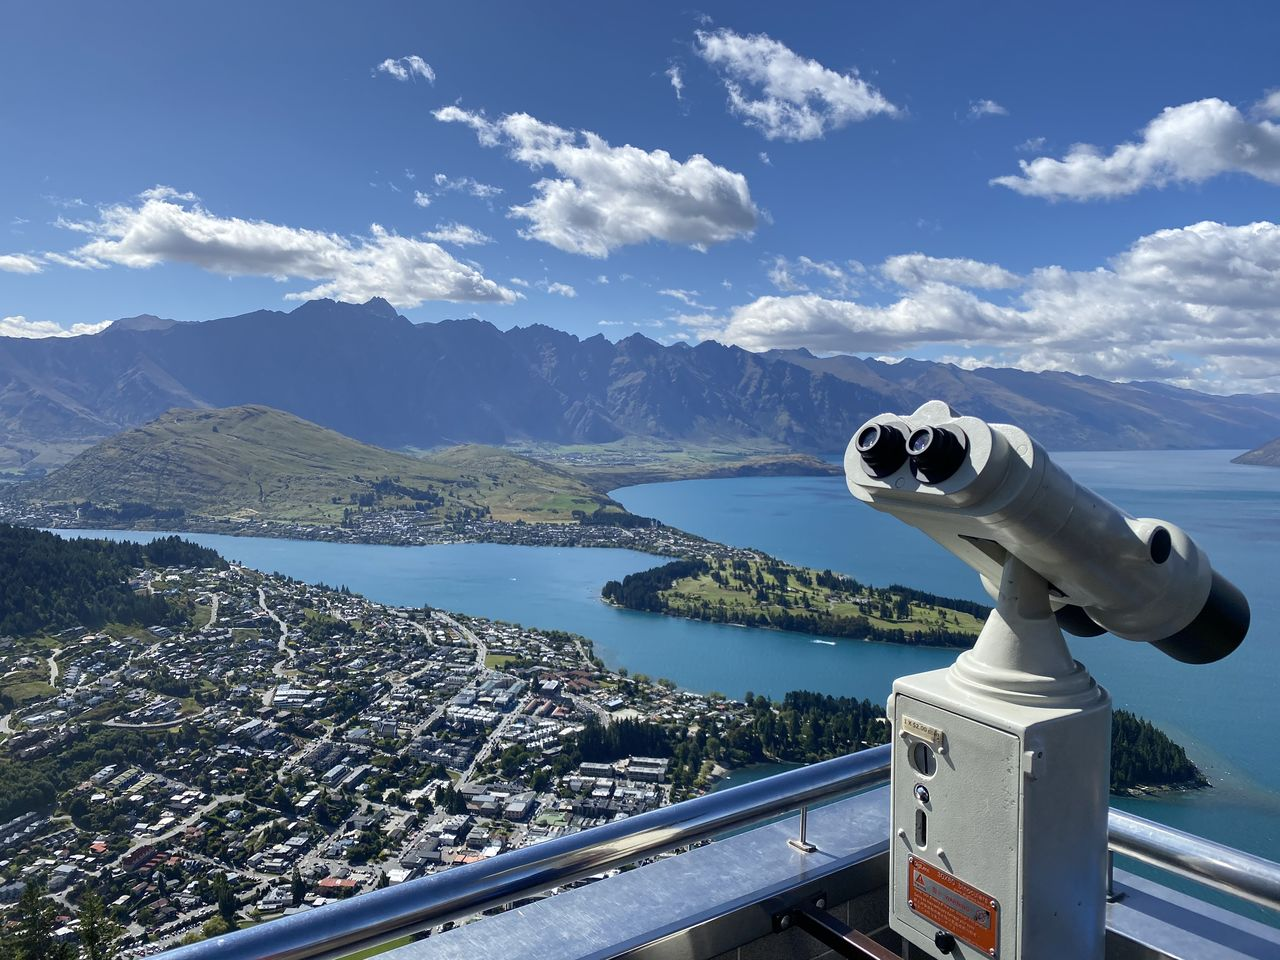 water, binoculars, coin operated, mountain, sky, coin-operated binoculars, beauty in nature, nature, sea, cloud - sky, scenics - nature, day, no people, optical instrument, observation point, telescope, sunlight, tranquil scene, mountain range, astronomy, outdoors, hand-held telescope